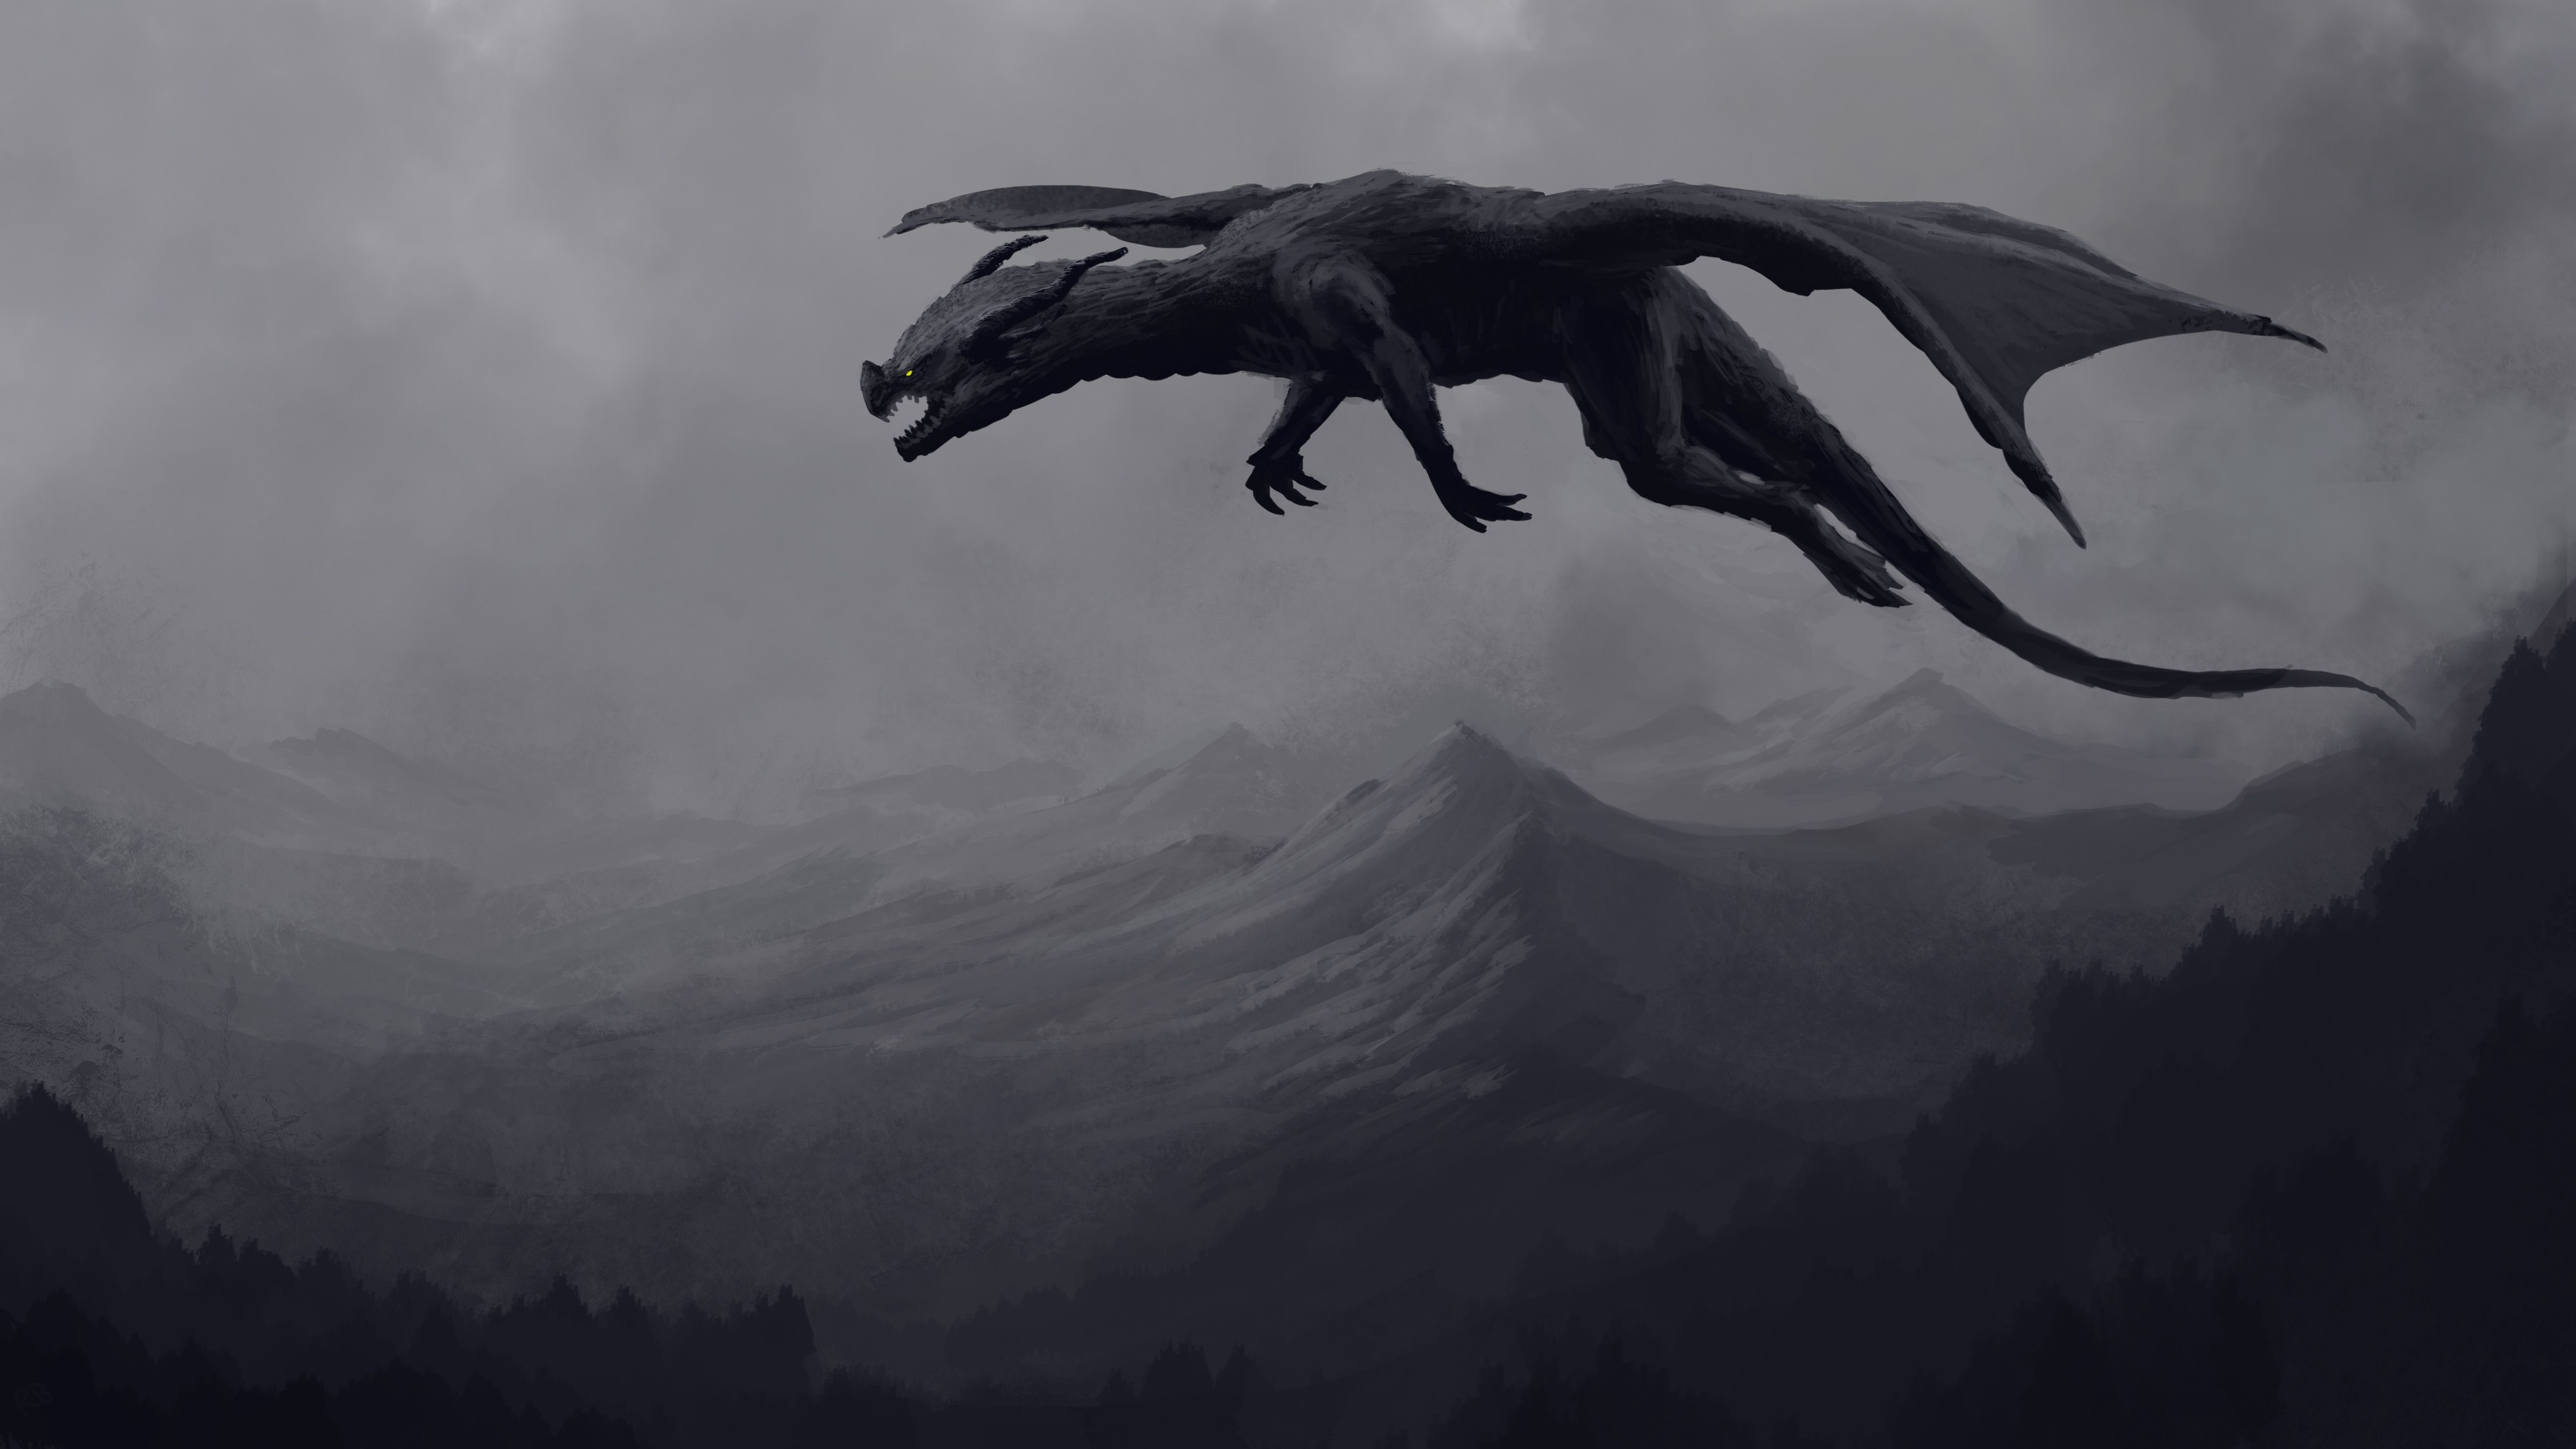 big giant black dragon 4k 1540754264 - Big Giant Black Dragon 4k - hd-wallpapers, dragon wallpapers, digital art wallpapers, dark wallpapers, artwork wallpapers, artist wallpapers, 4k-wallpapers